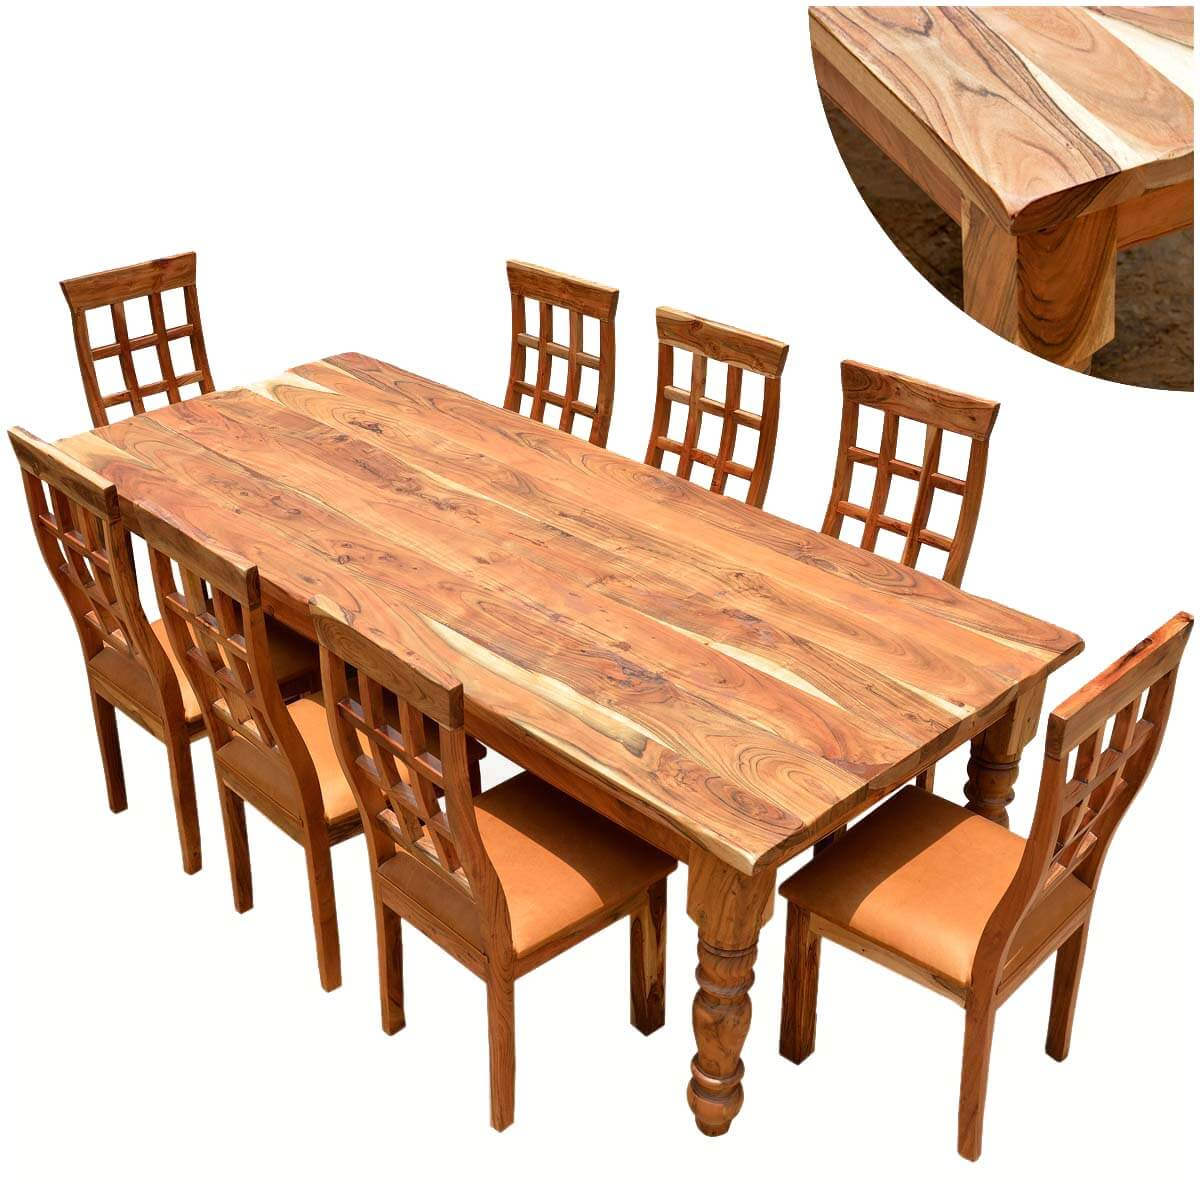 Diy vintage solid wood trestle solid wood farmhouse dining for Solid wood farmhouse table